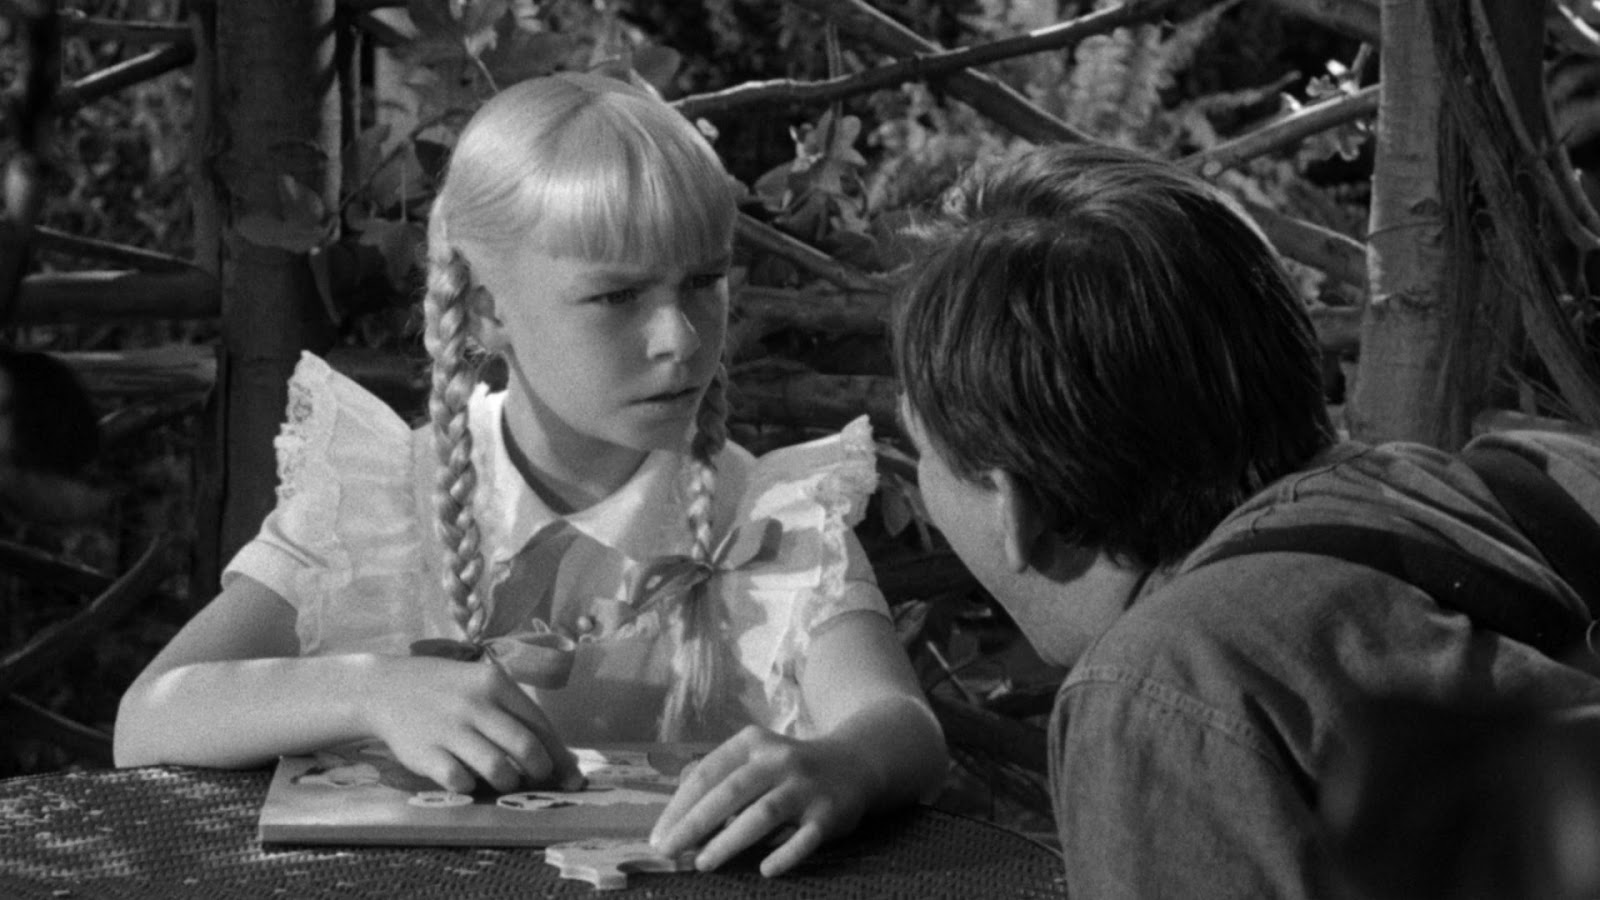 the bad seed 1 day ago  more than 60 years after the bad seed chilled audiences, original star patty  mccormack returns in a new role for lifetime's remake with rob.